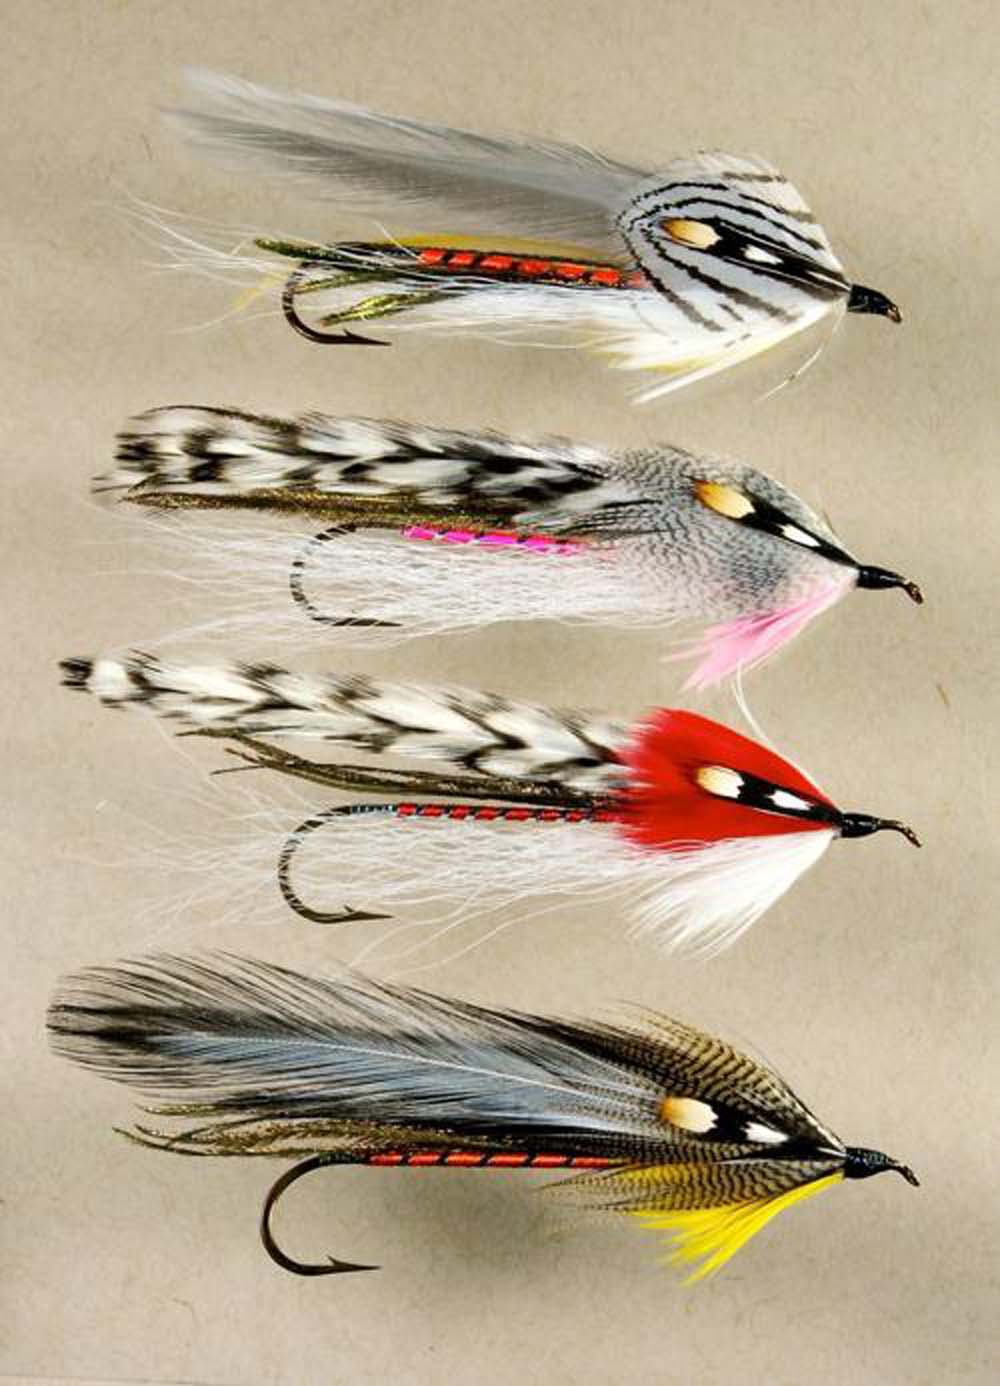 Maine, Carrie Stevens, and everything a fly fisher needs to know about them